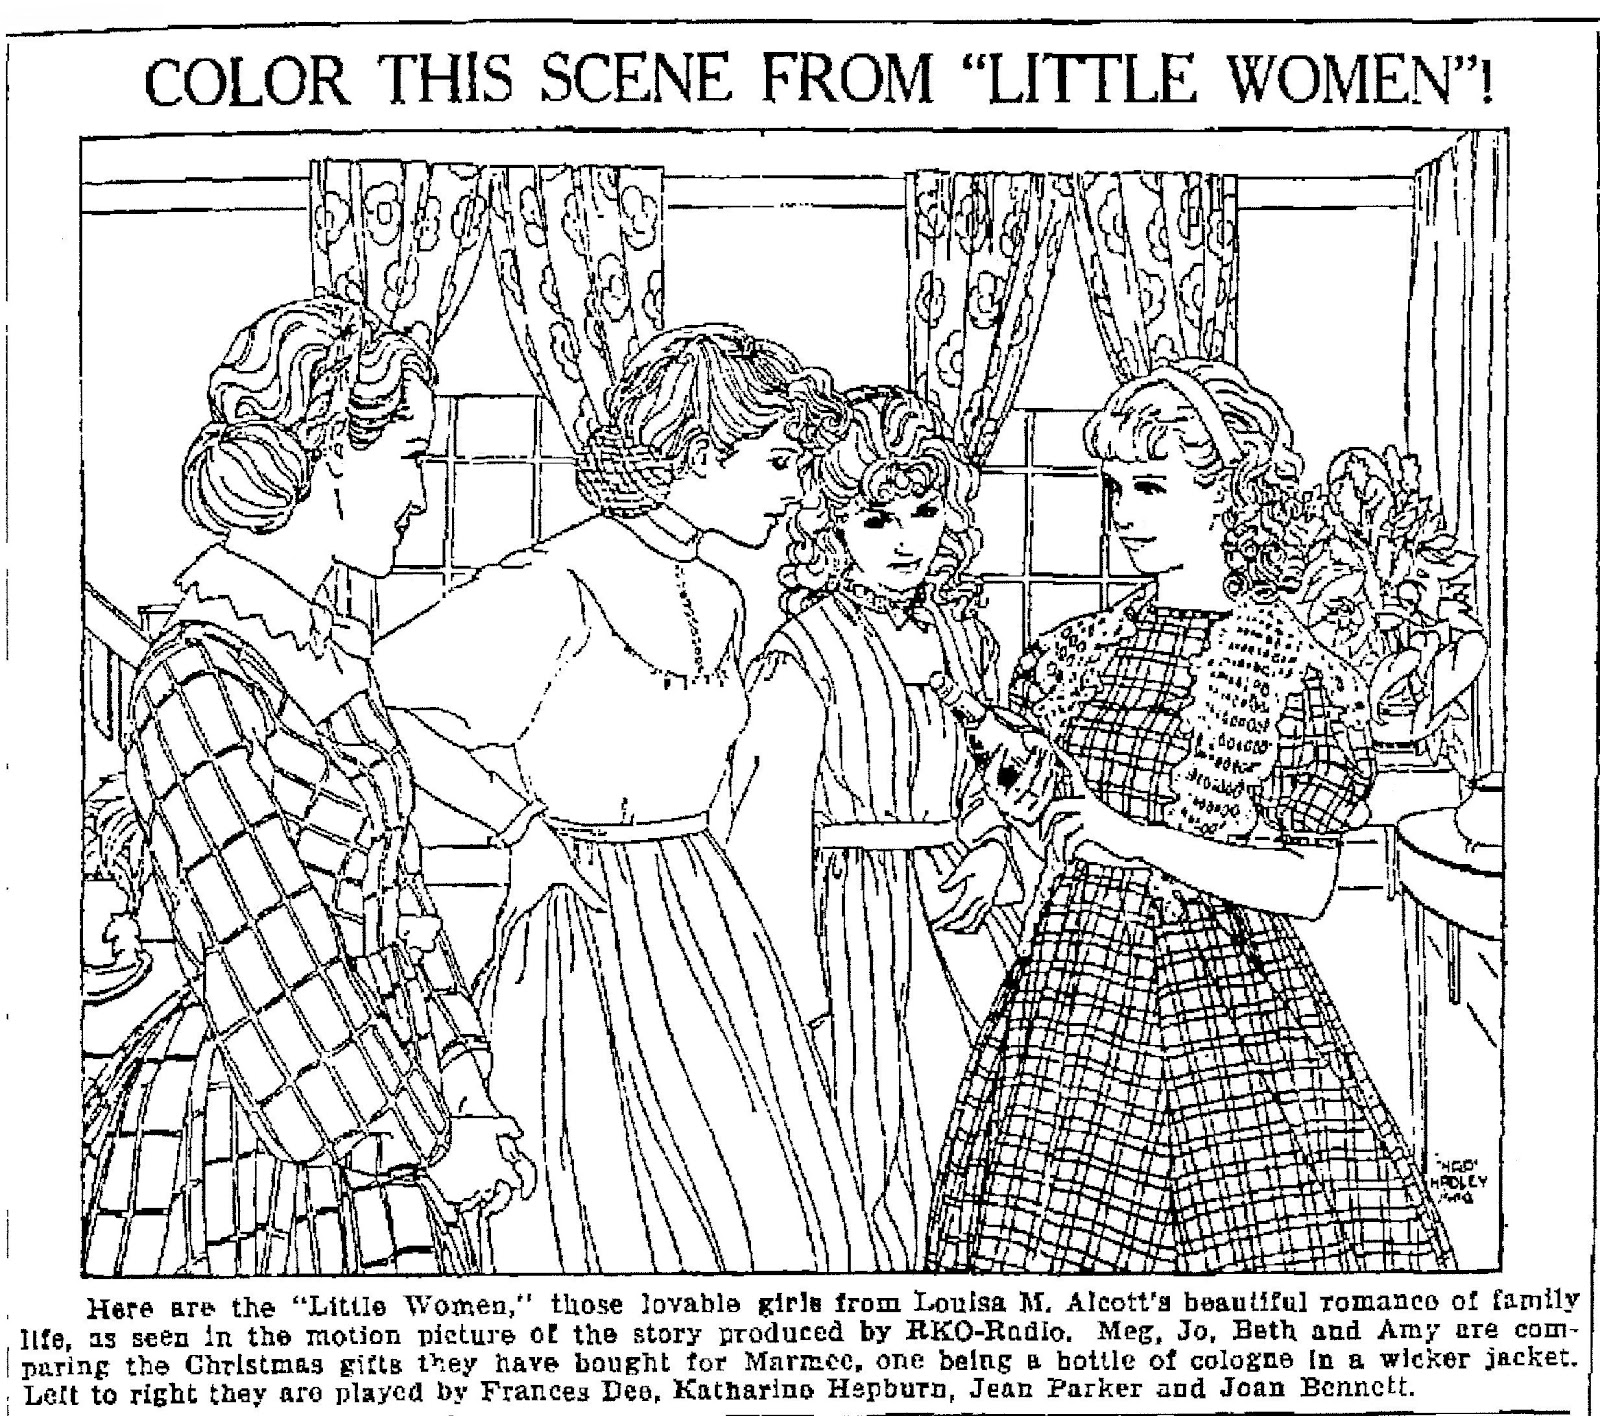 here are the little women those lovable girls from louisa m alcotts beautiful romance of family life as seen in the motion picture of the story